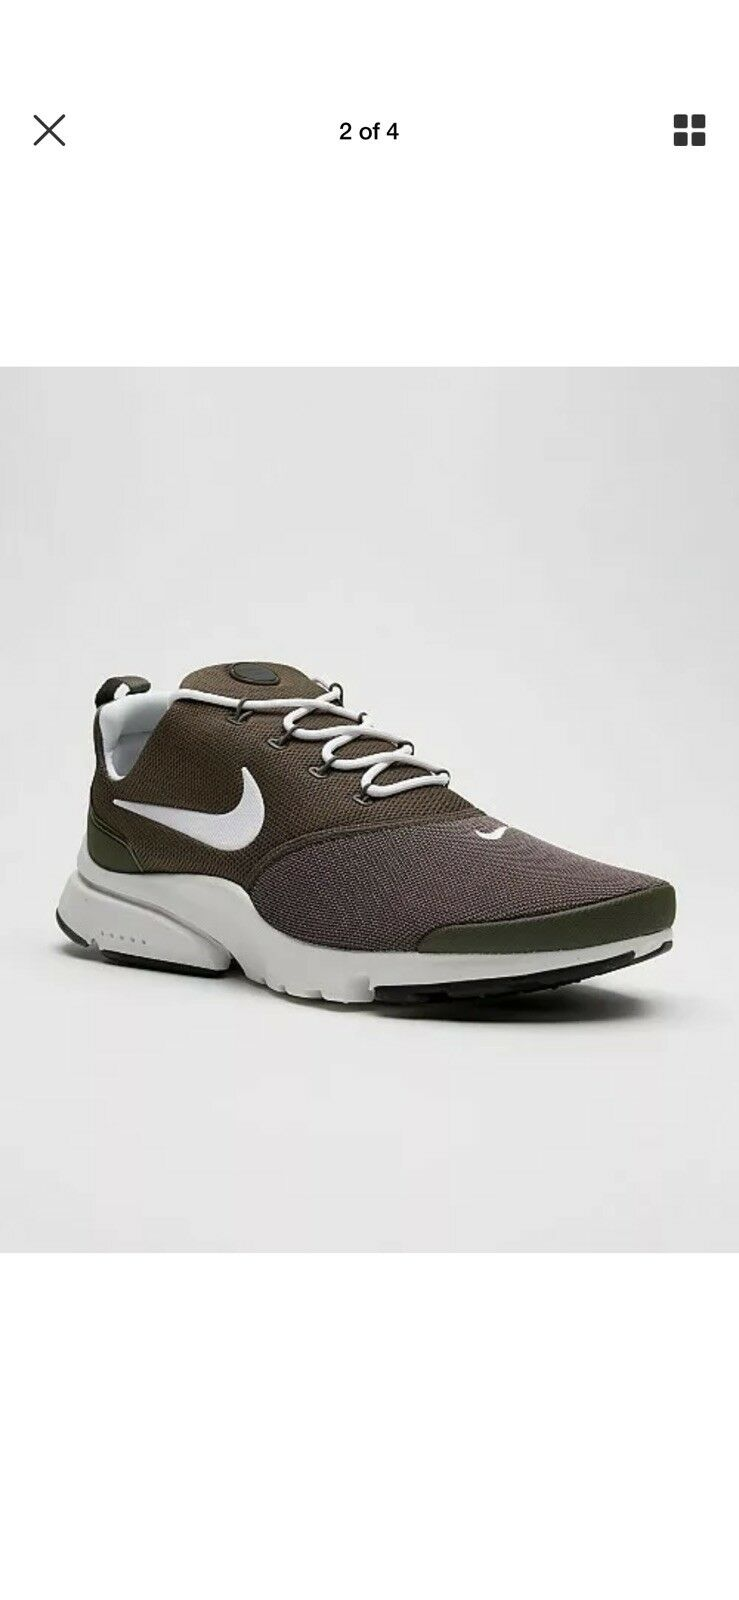 New Nike Presto Fly Shoes Trainers